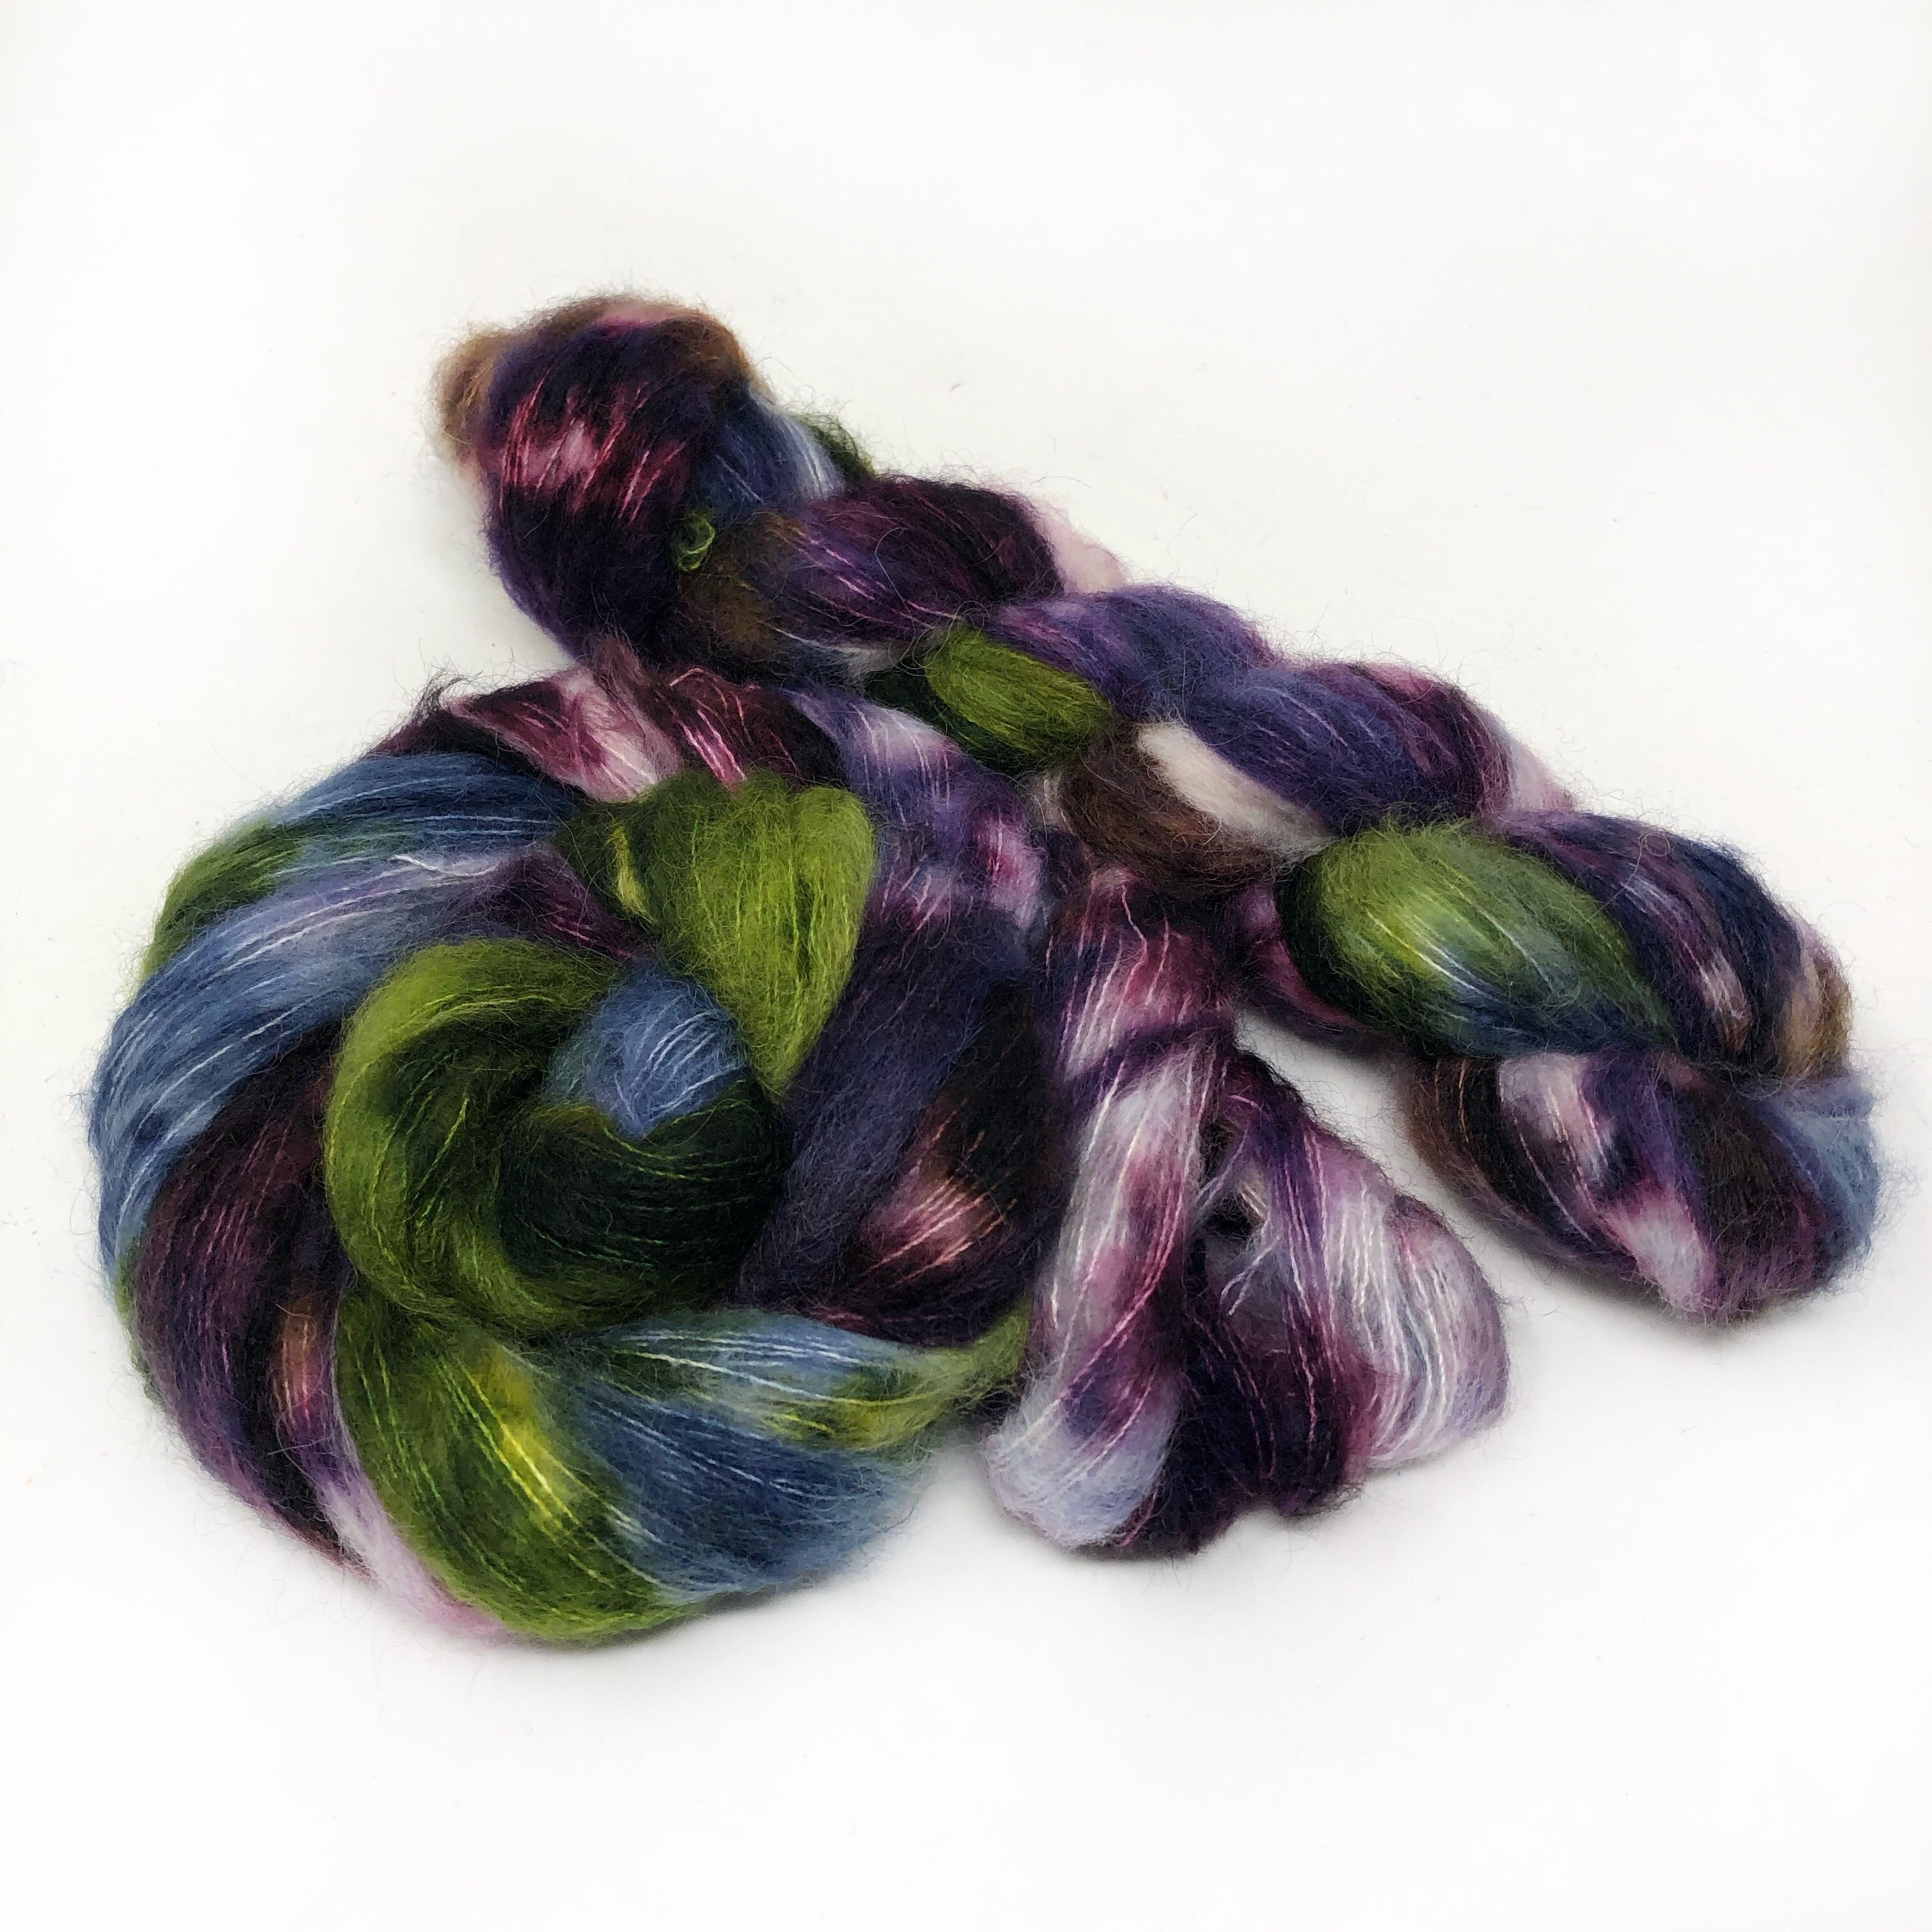 Novembers Witch - Halo Silk Laceweight